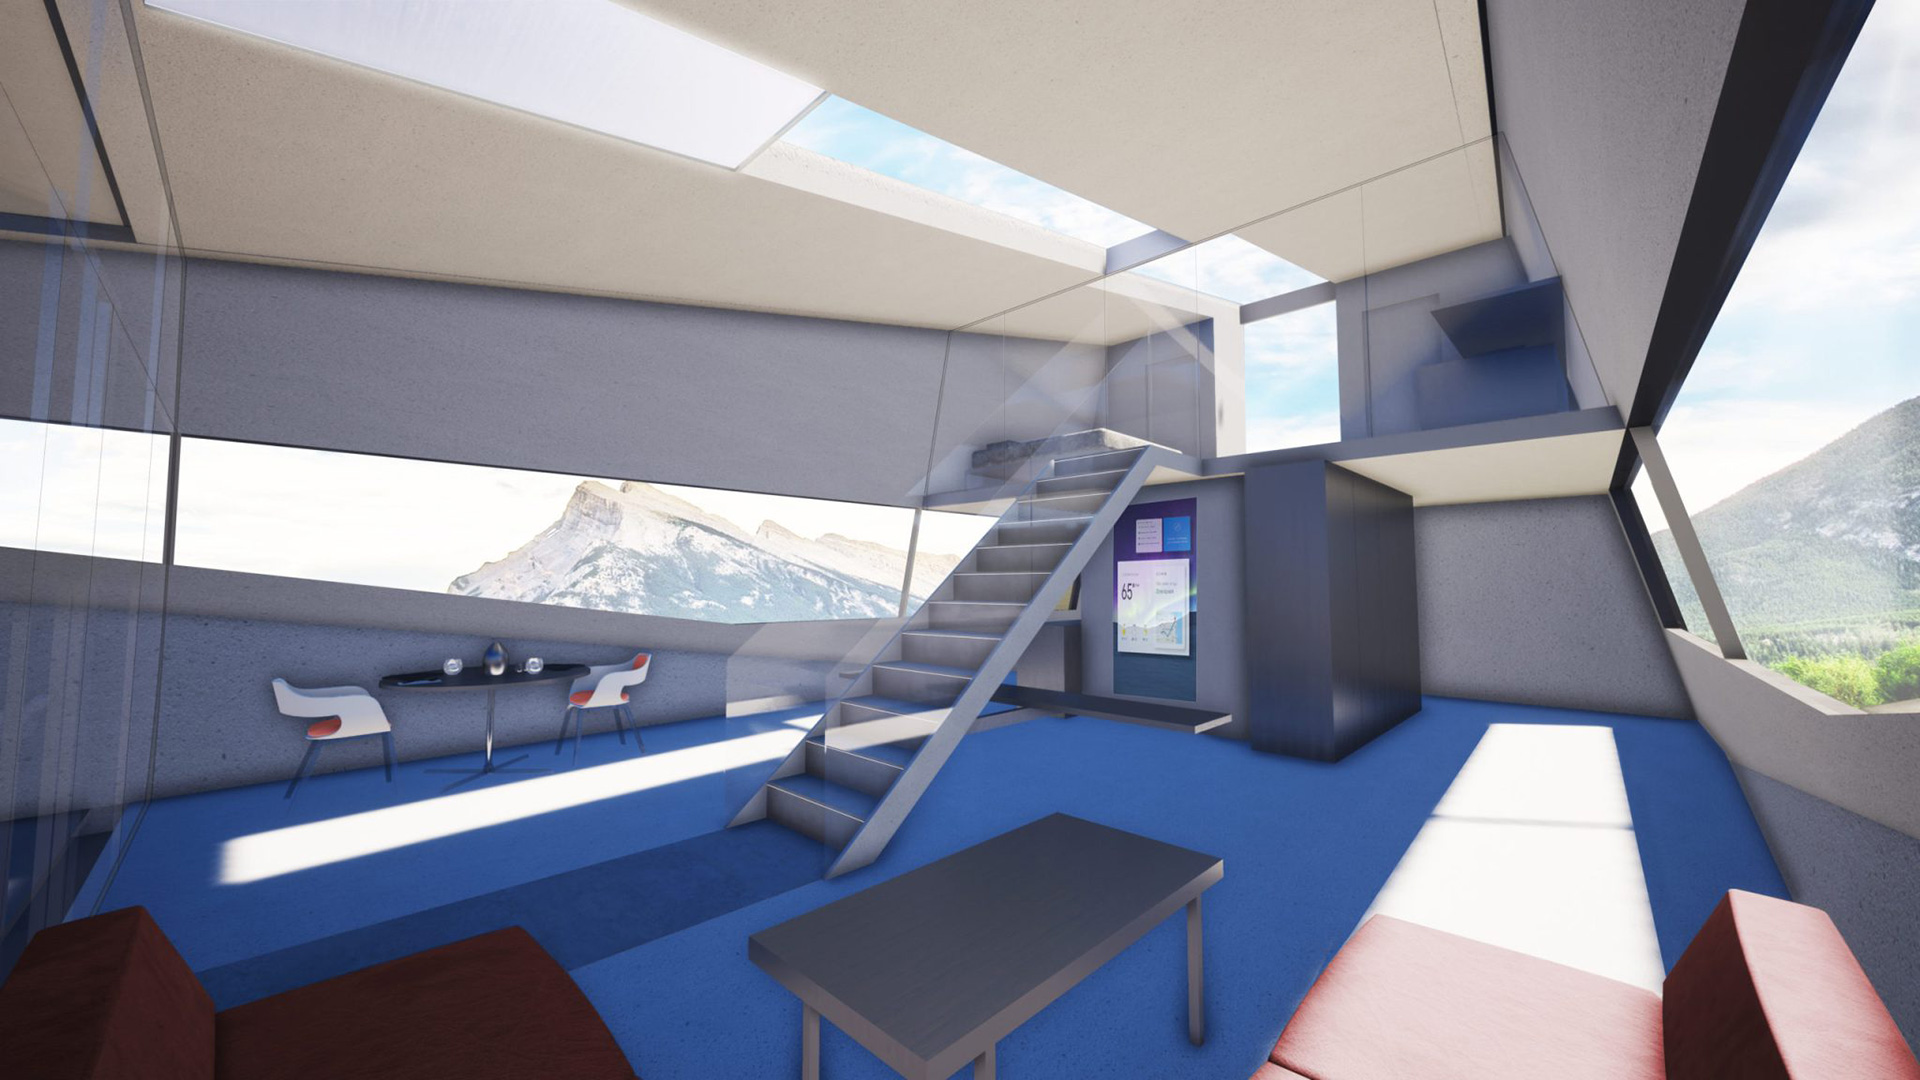 An envisioned living space inside Cybunker | Cybunker |Lars Büro | STIRworld